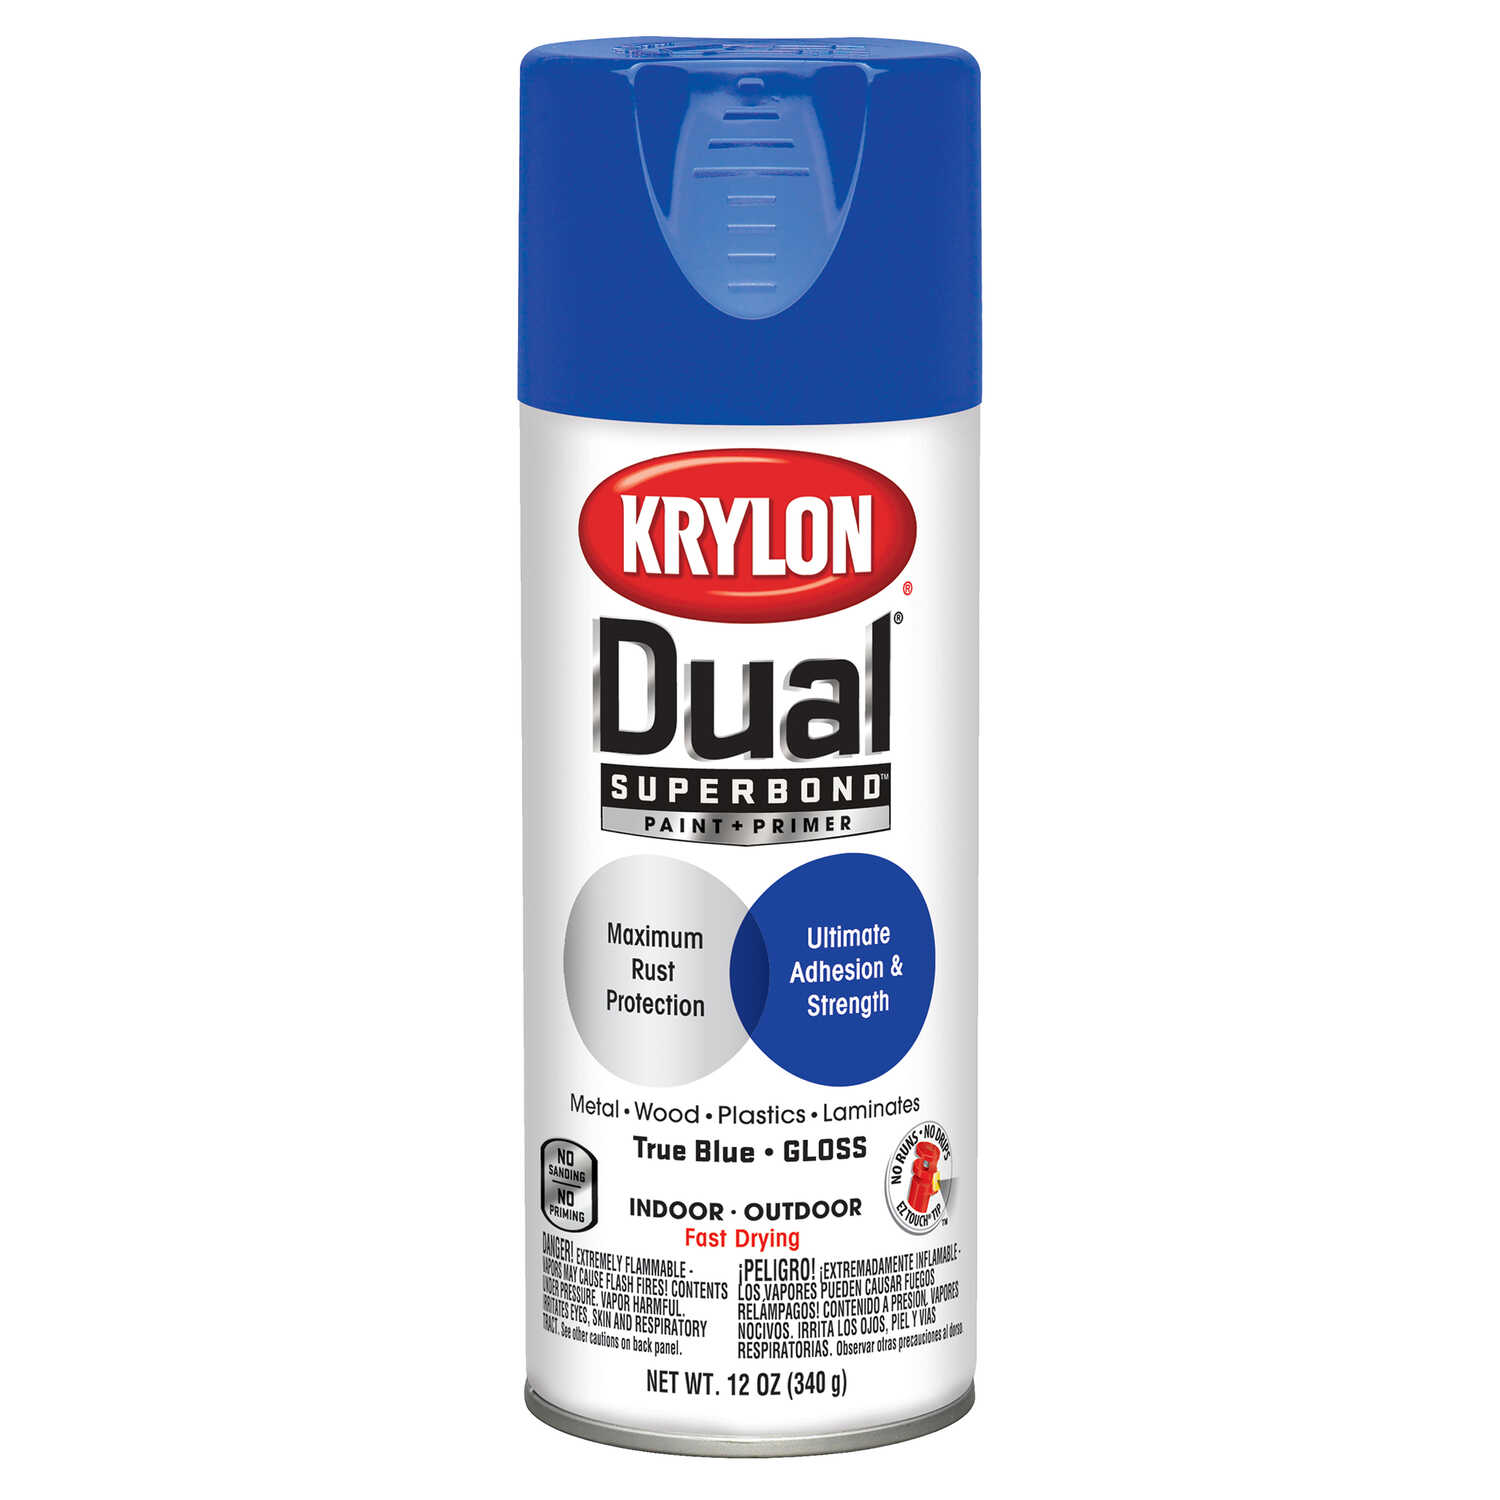 Krylon  Dual  Gloss  True Blue  Paint + Primer Spray Paint  12 oz.